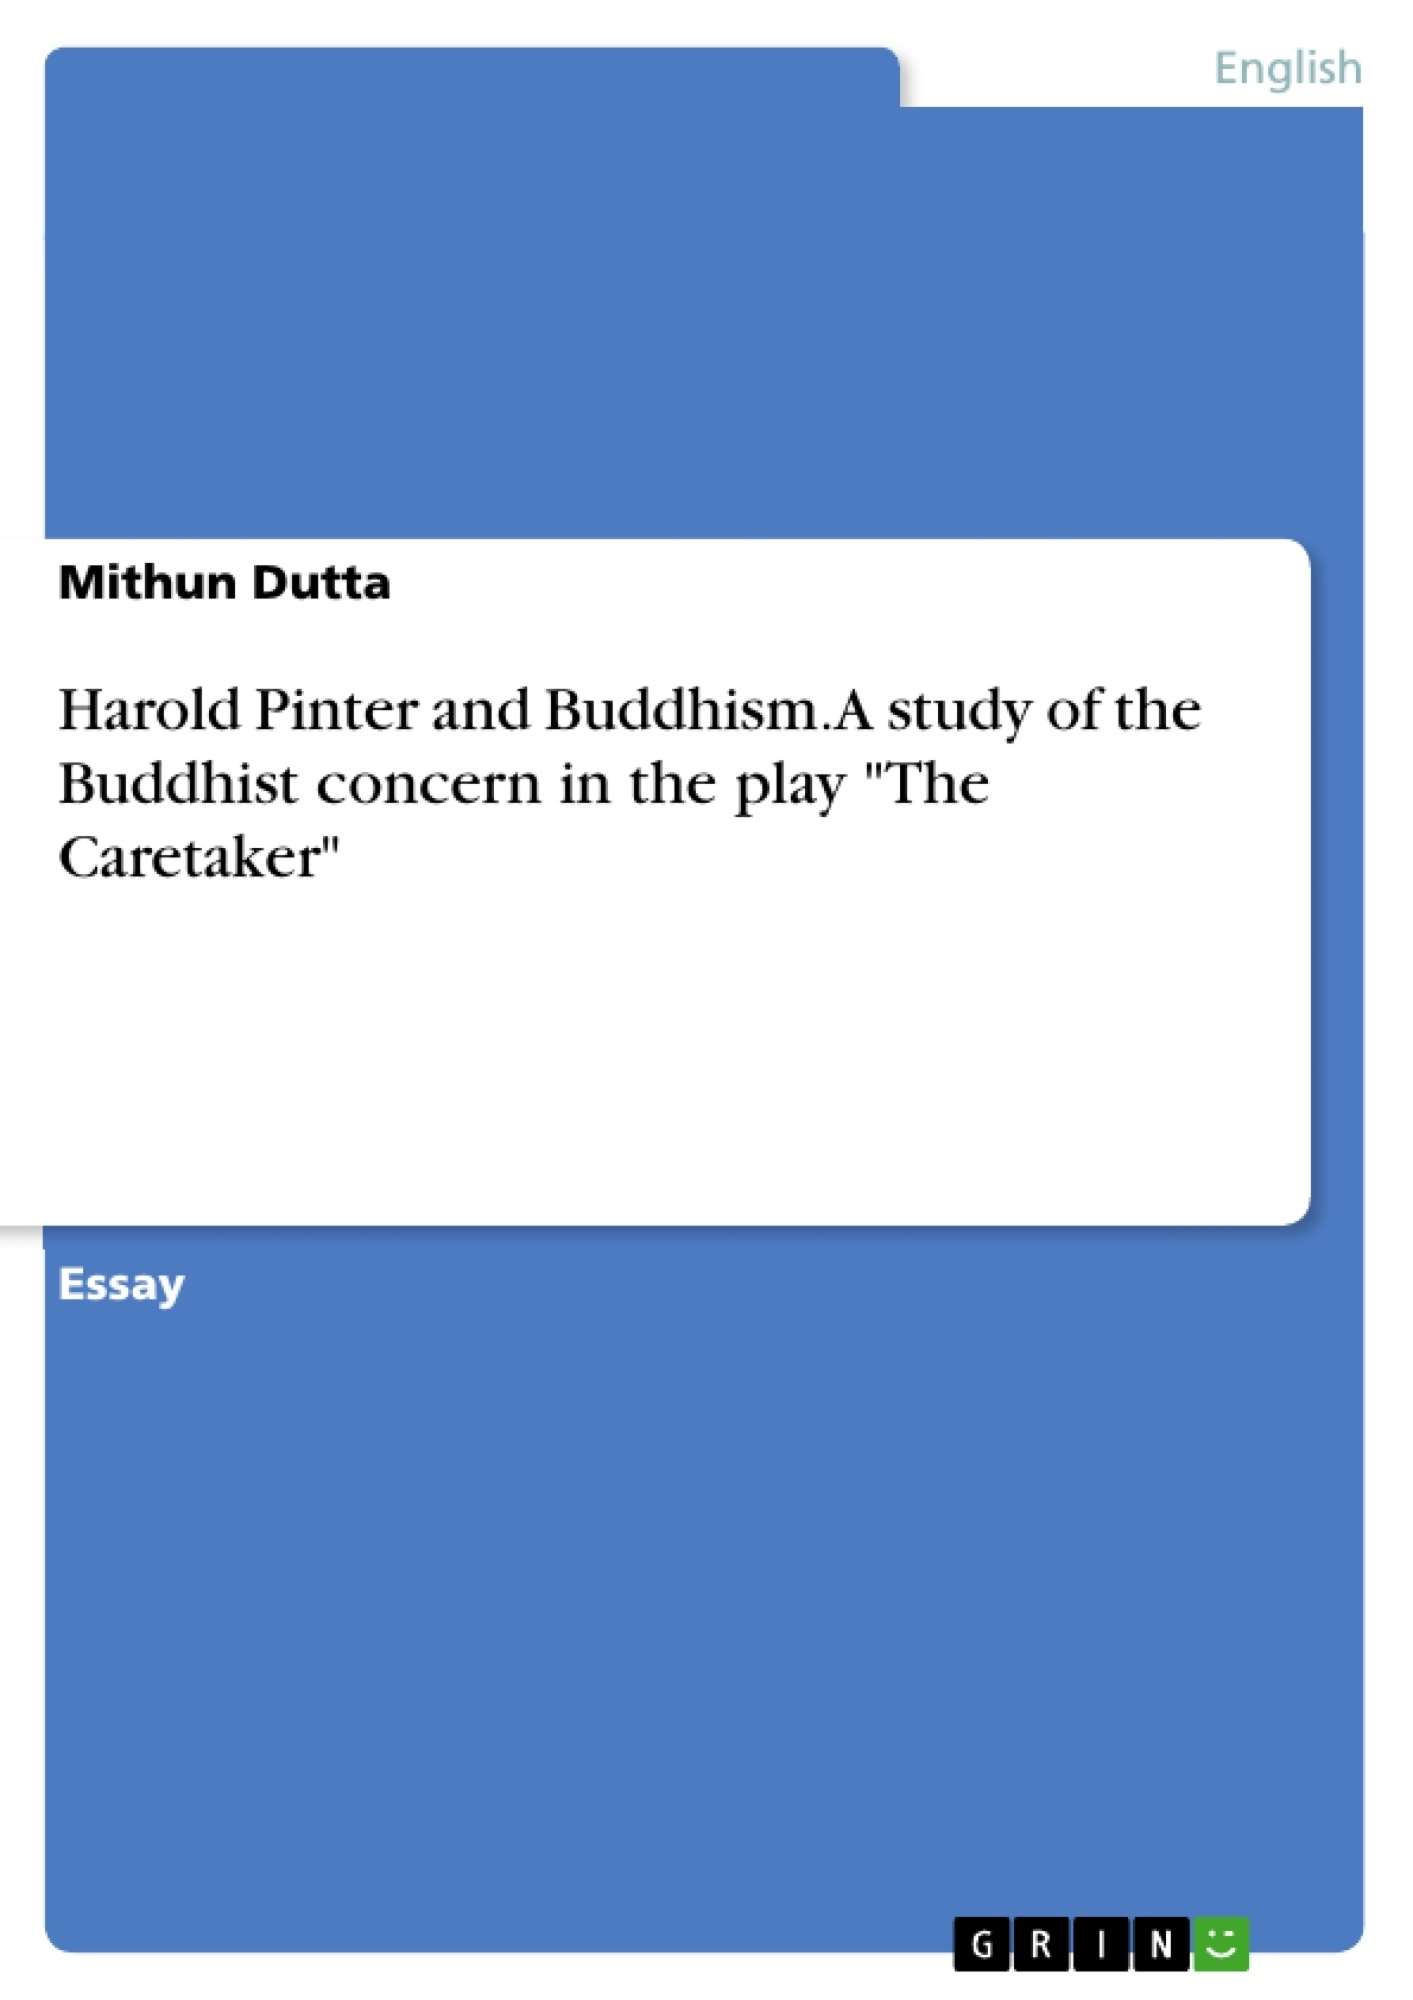 """Title: Harold Pinter and Buddhism. A study of the Buddhist concern in the play """"The Caretaker"""""""